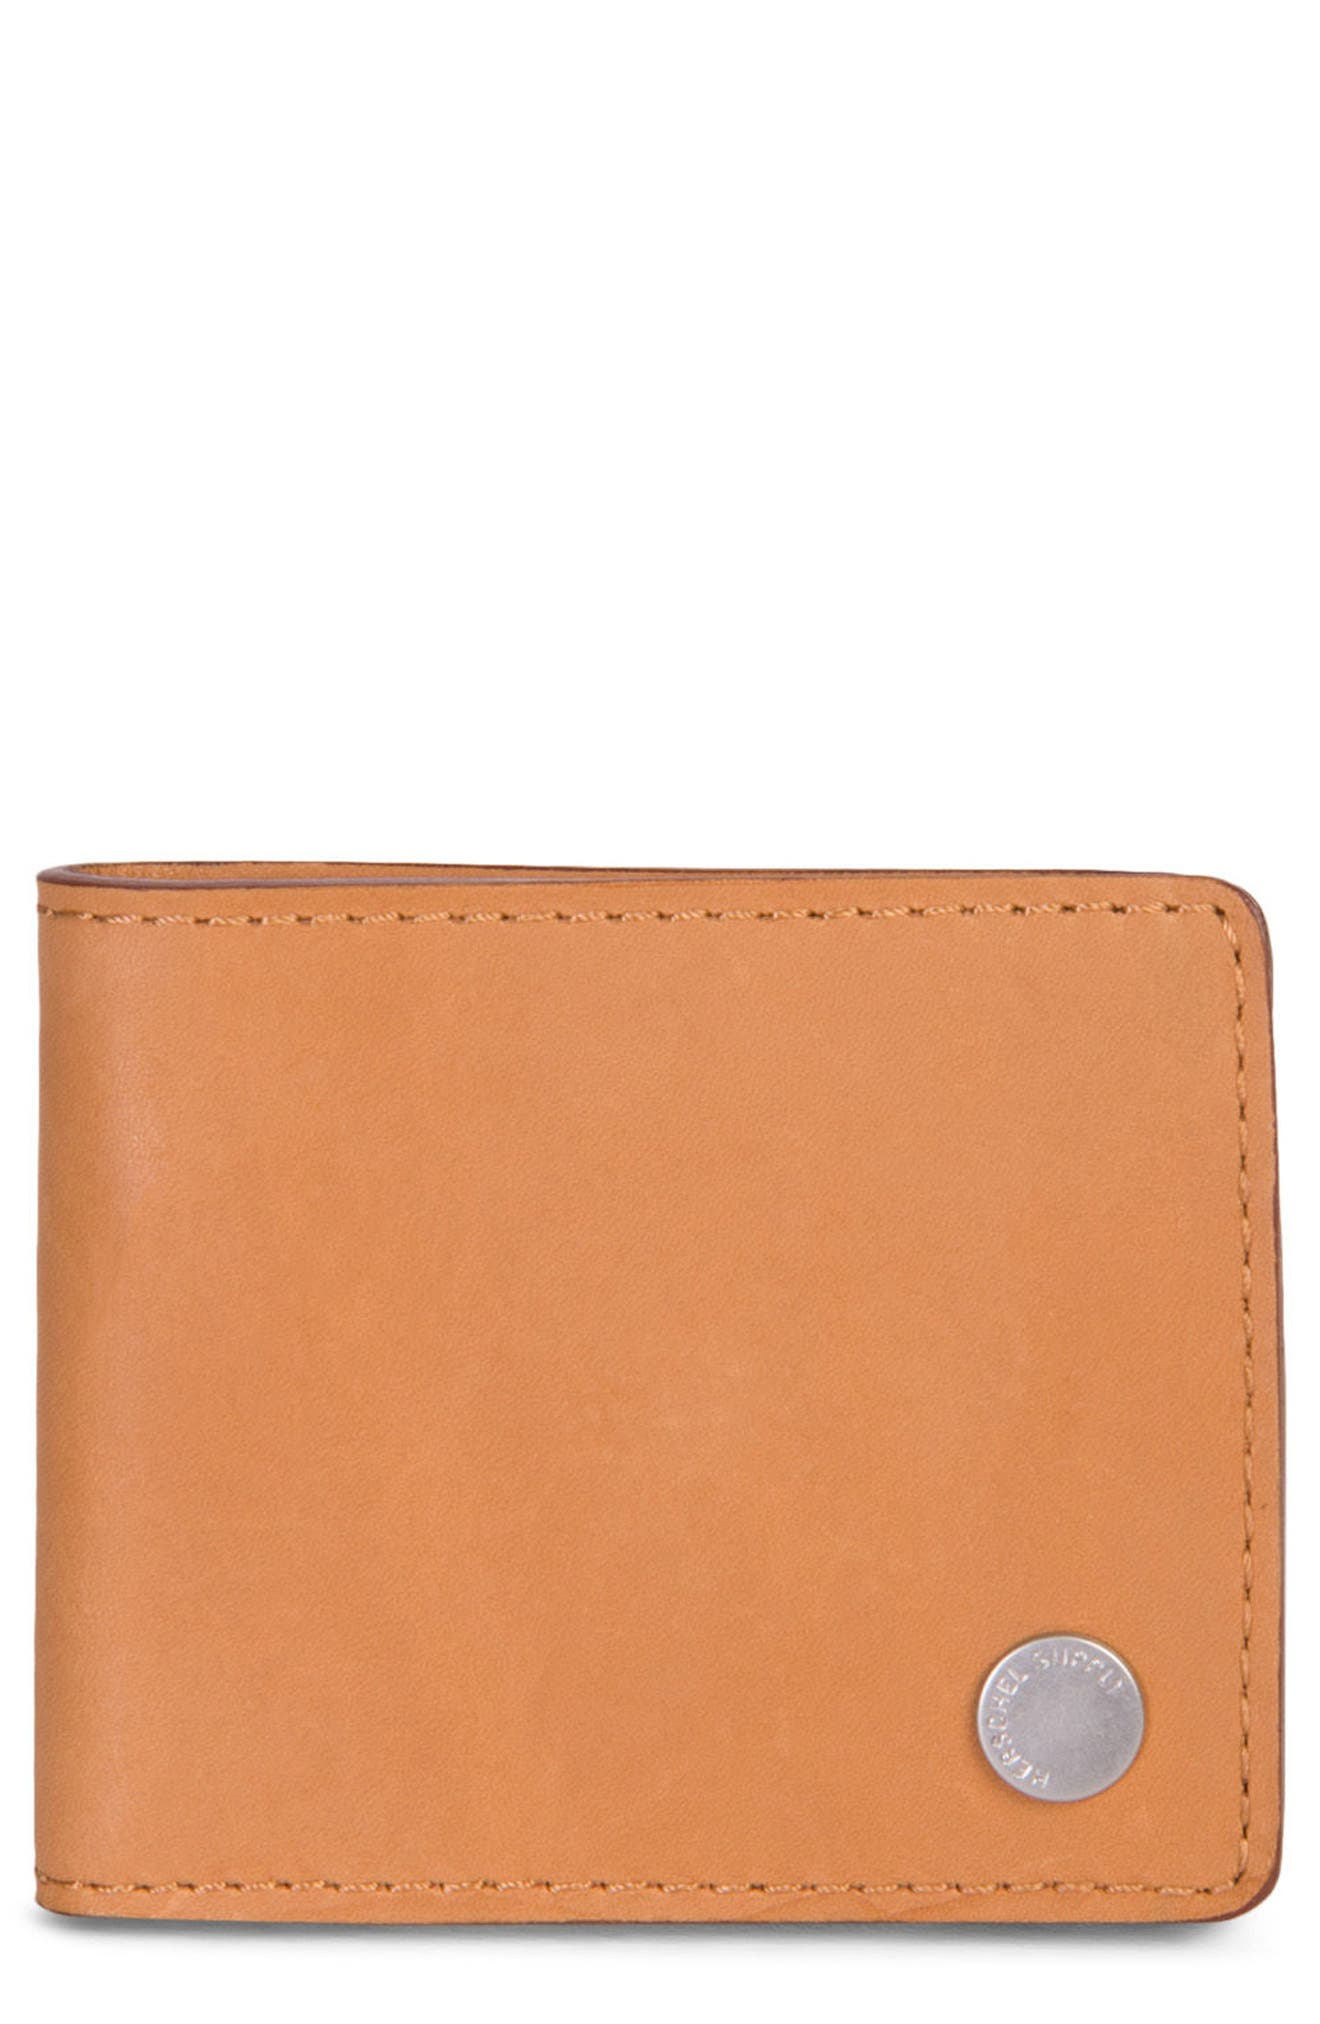 Vincent Saddle Leather Wallet,                         Main,                         color, Tan